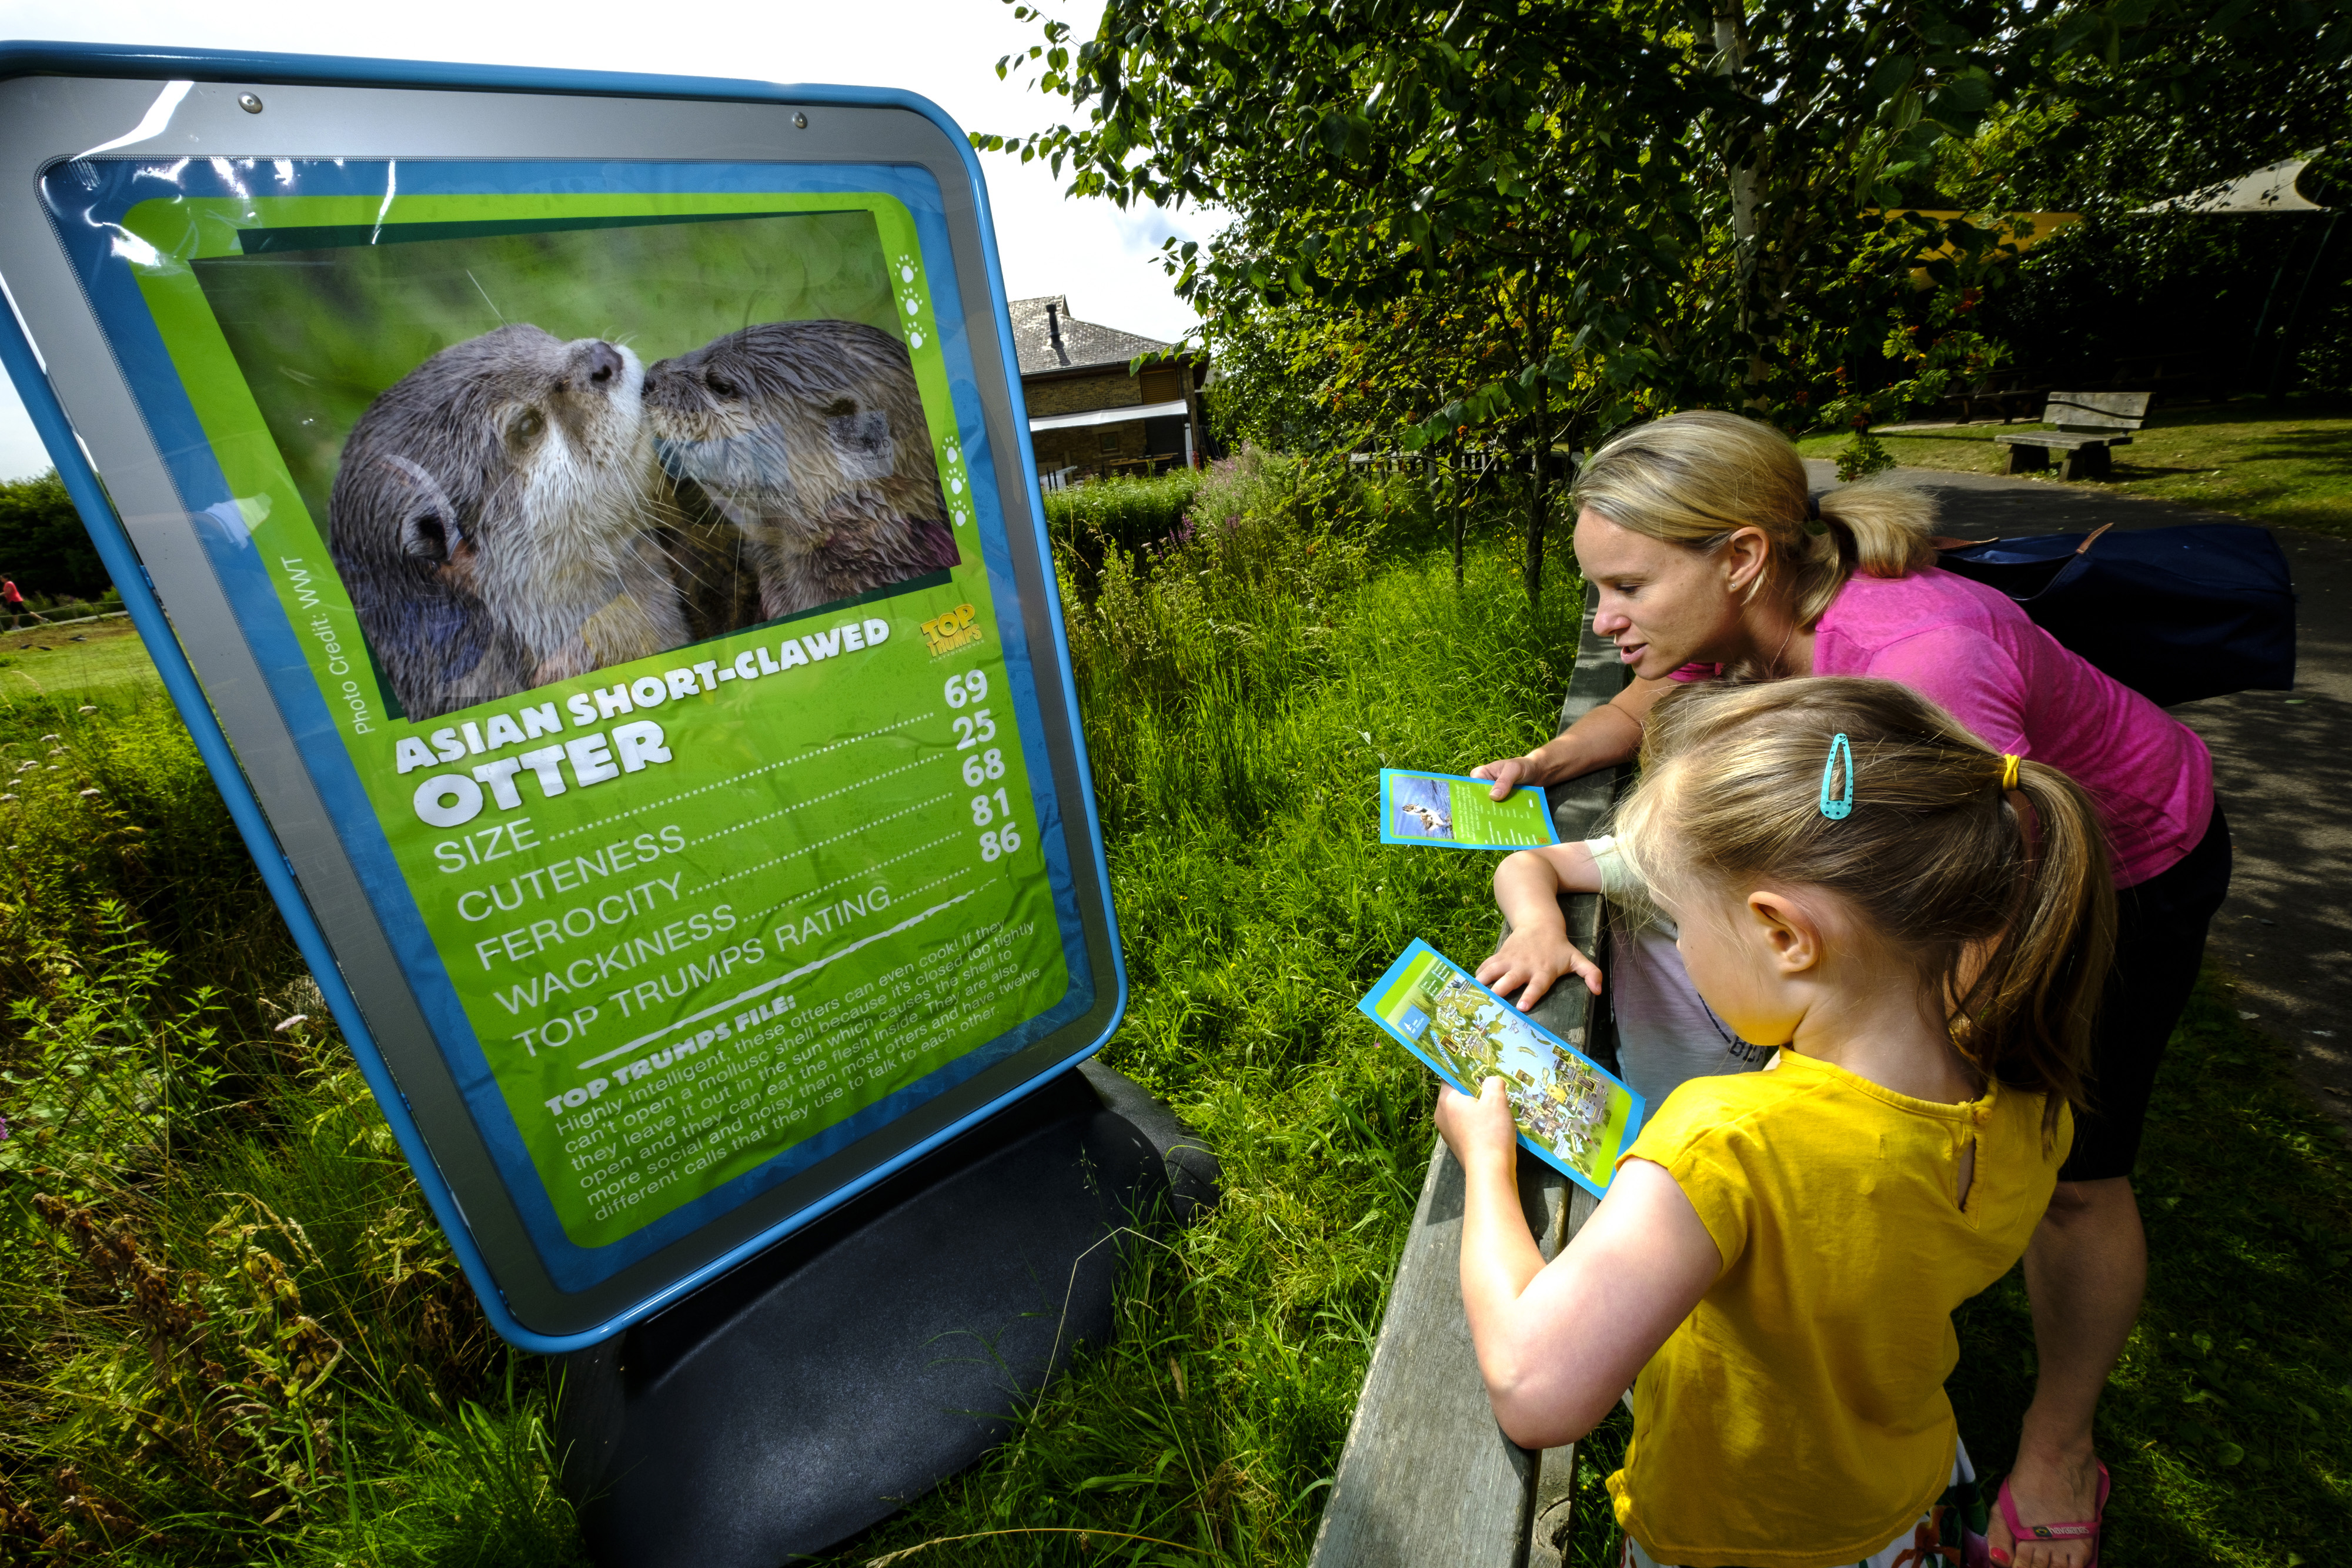 Let the Kids Go Wild this Summer    Dusty's Wildlife Rangers at WWT Martin Mere Wetland Centre    21 July – 3 September    Children of all ages can join Dusty Duck, pick up their very own FREE log book and become real-life wildlife rangers at WWT Martin Mere Wetland Centre this summer holiday.